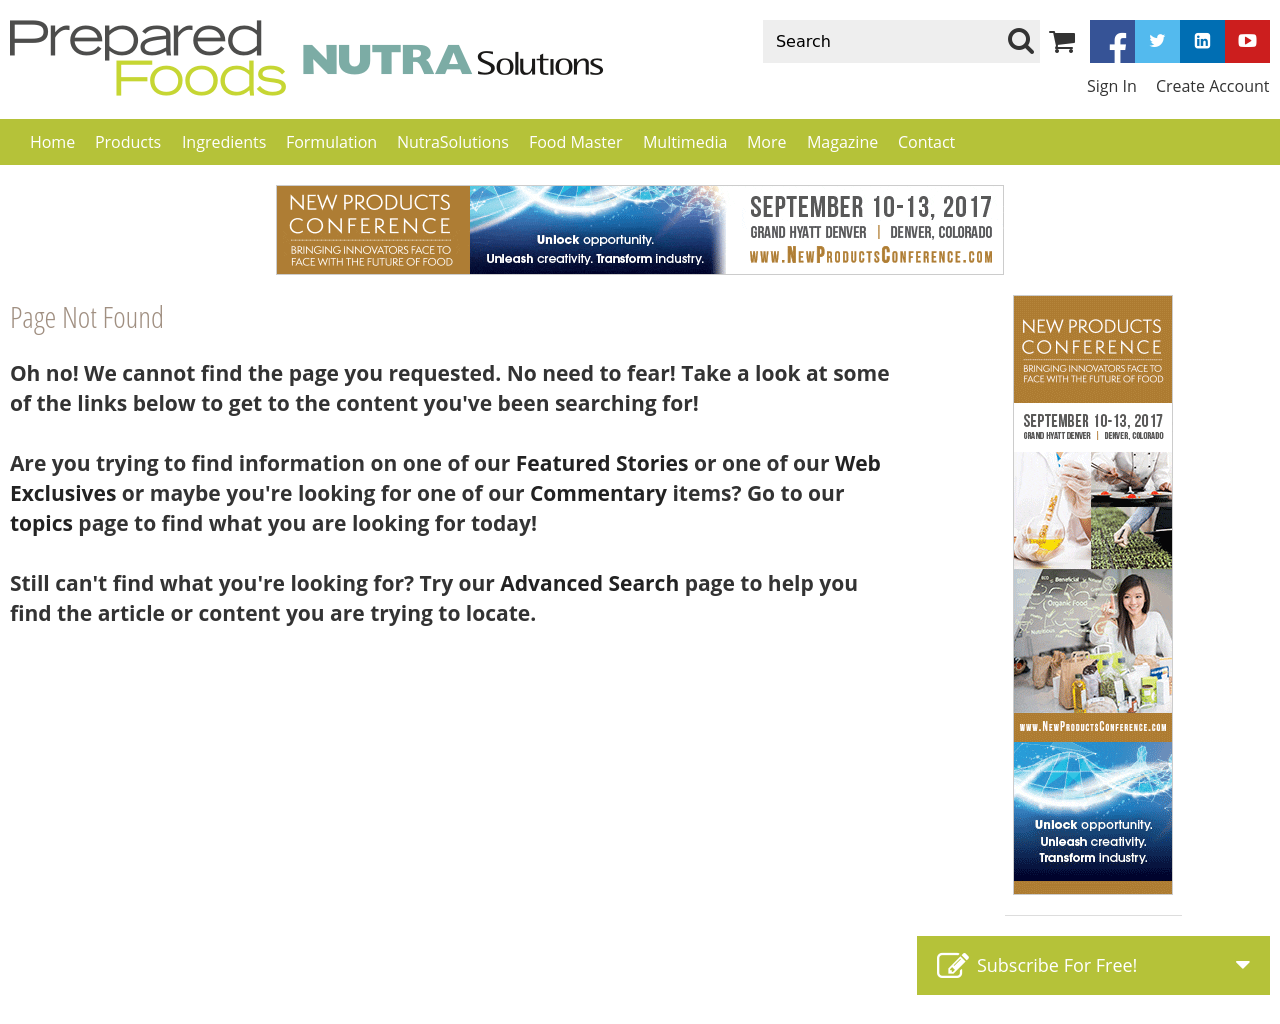 Prepared-Foods-Nutra-Solutions-Advertising-Reviews-Pricing